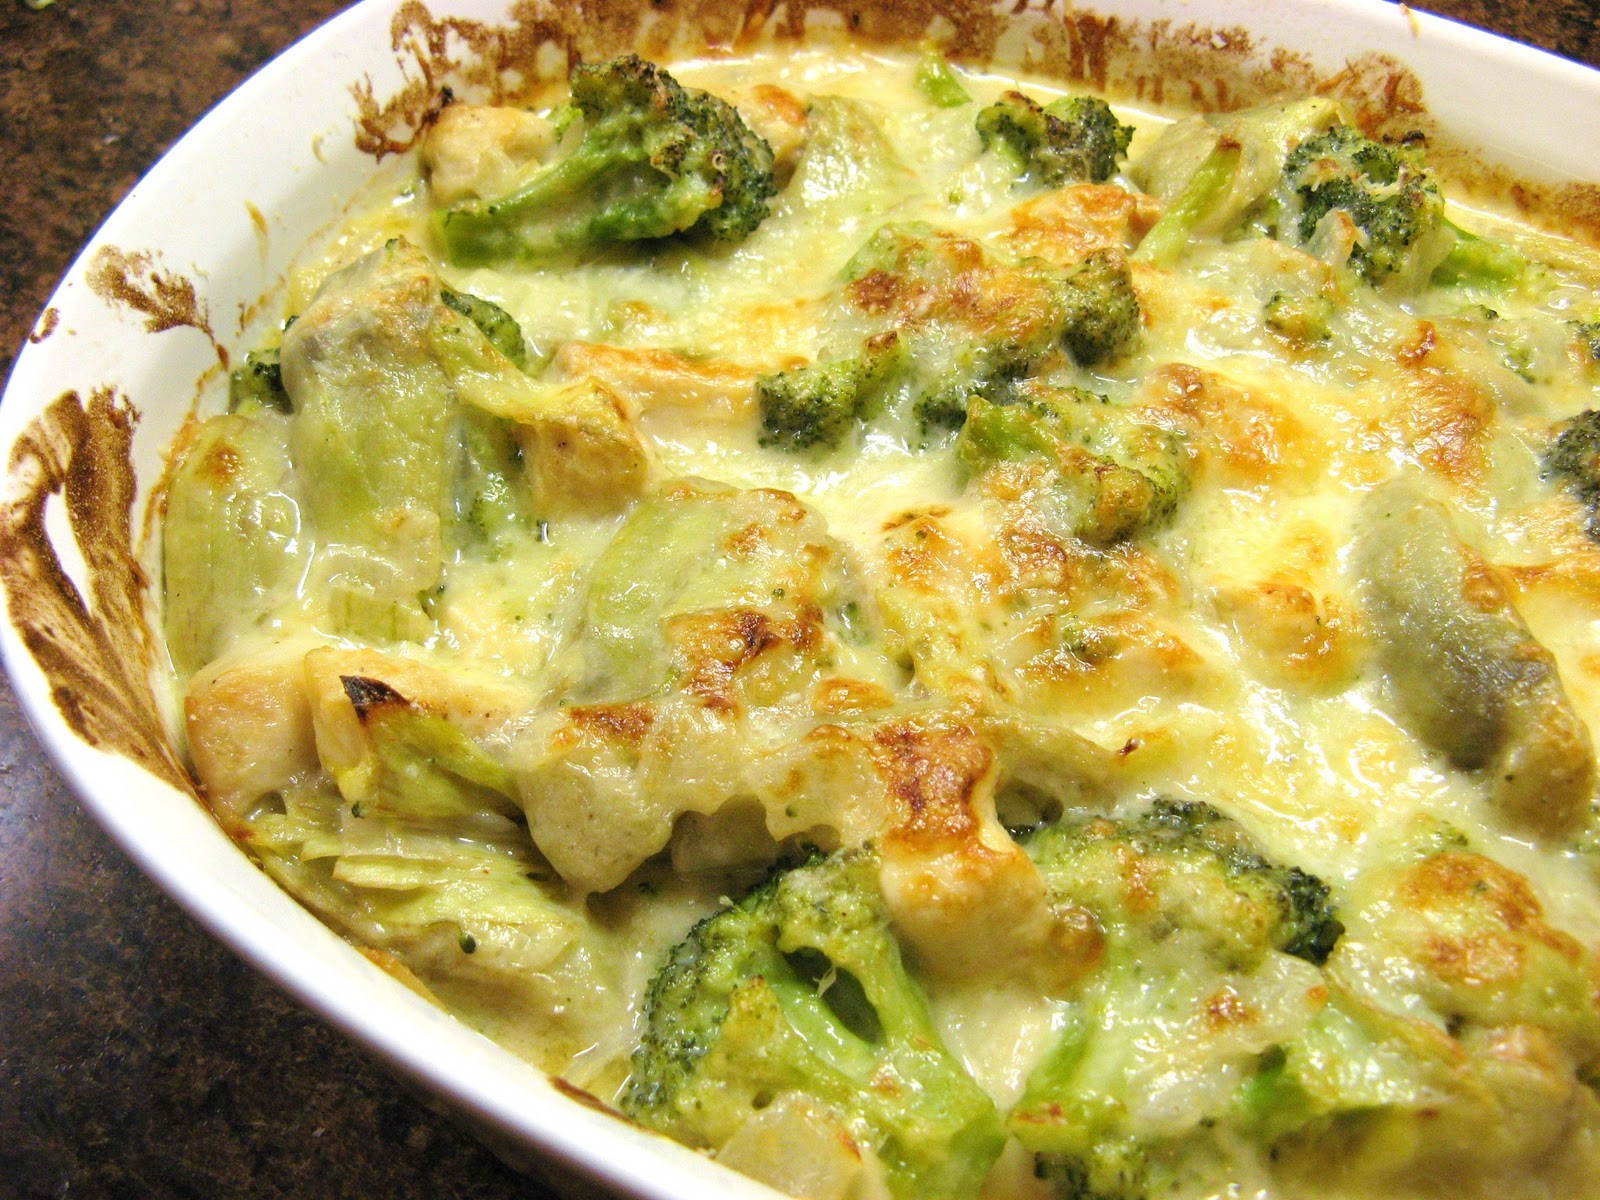 Broccoli and Chicken Casserole 1